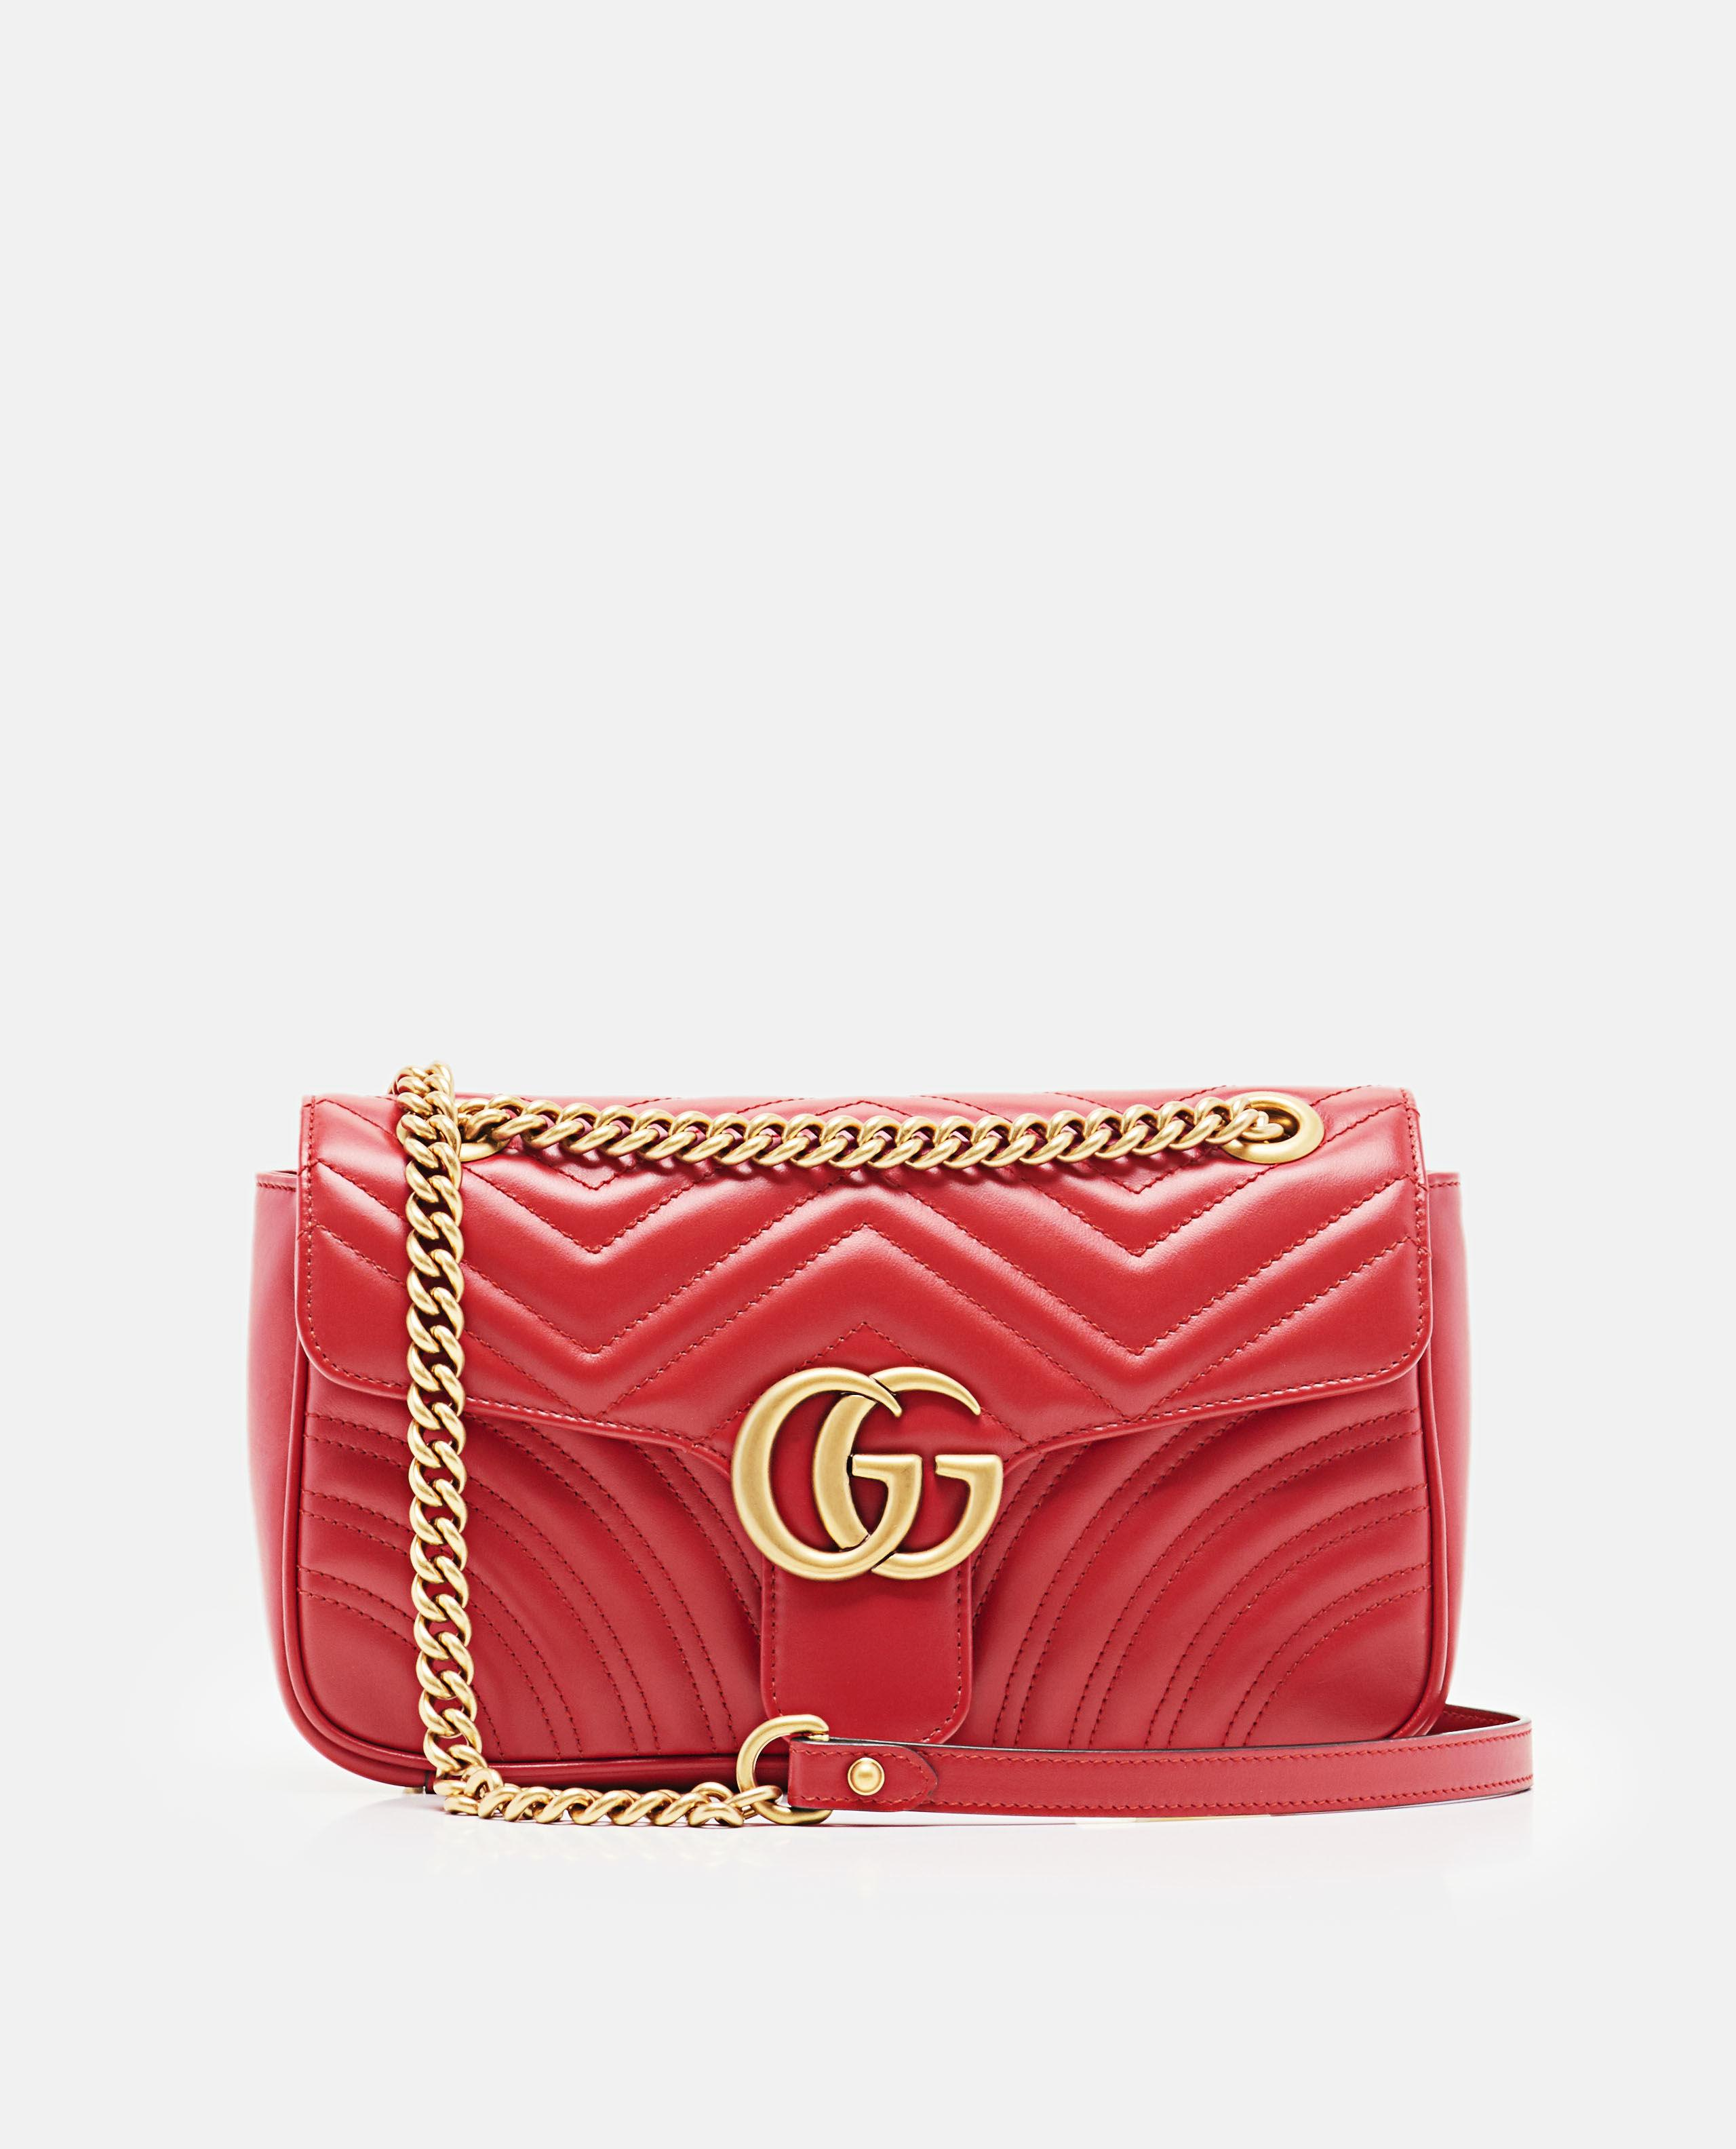 ef689f83a Gucci Gg Marmont Small Matelassé Shoulder Bag in Red - Lyst